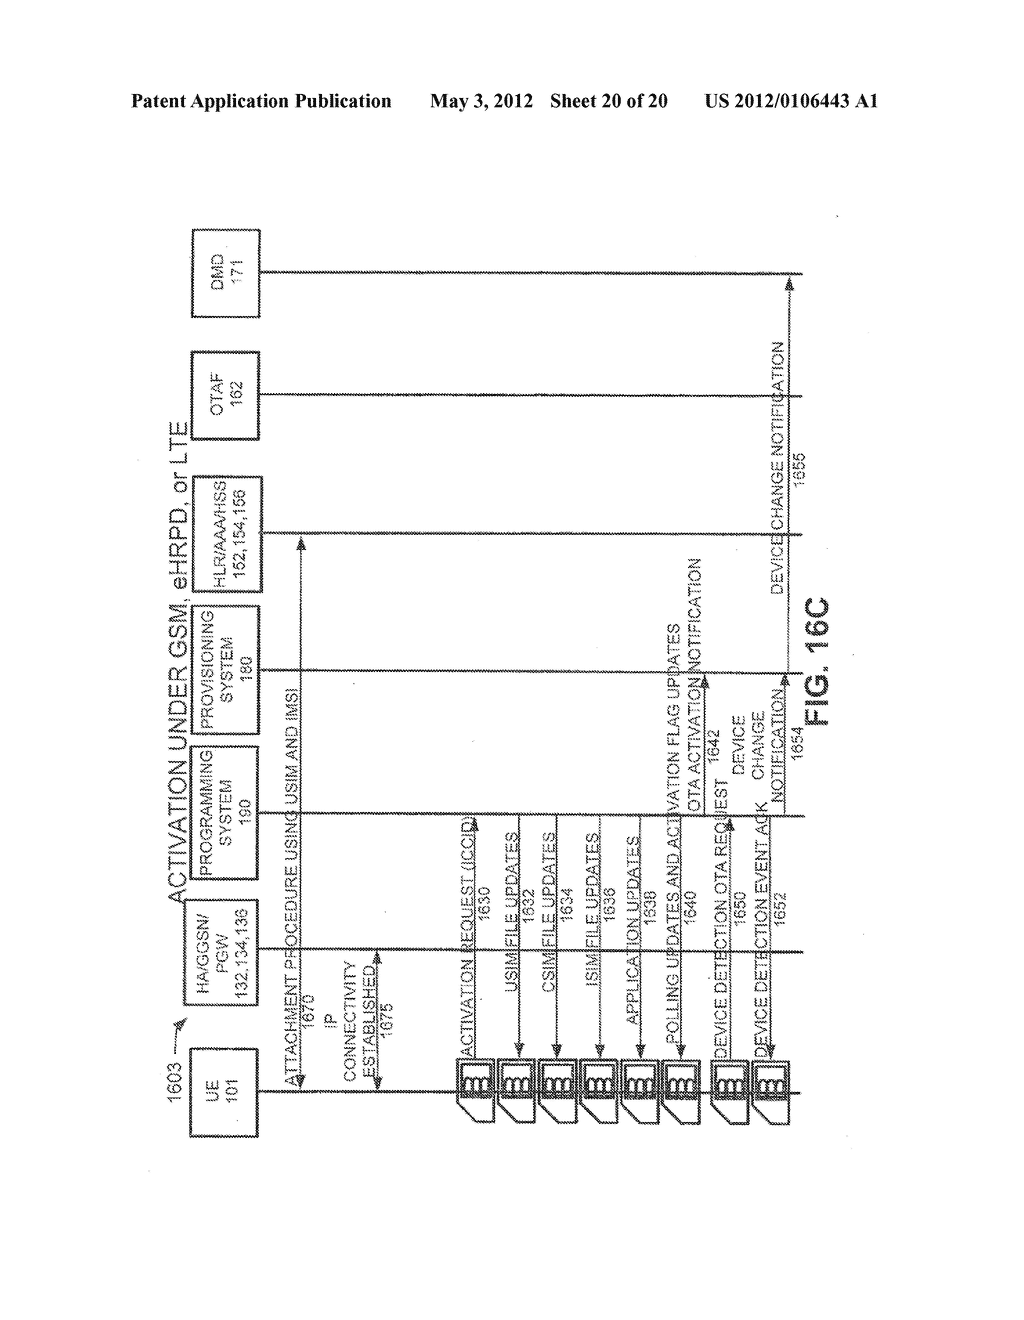 Universal Integrated Circuit Card Activation In A Hybrid Network Pic Programmer Diagram Schematic And Image 21